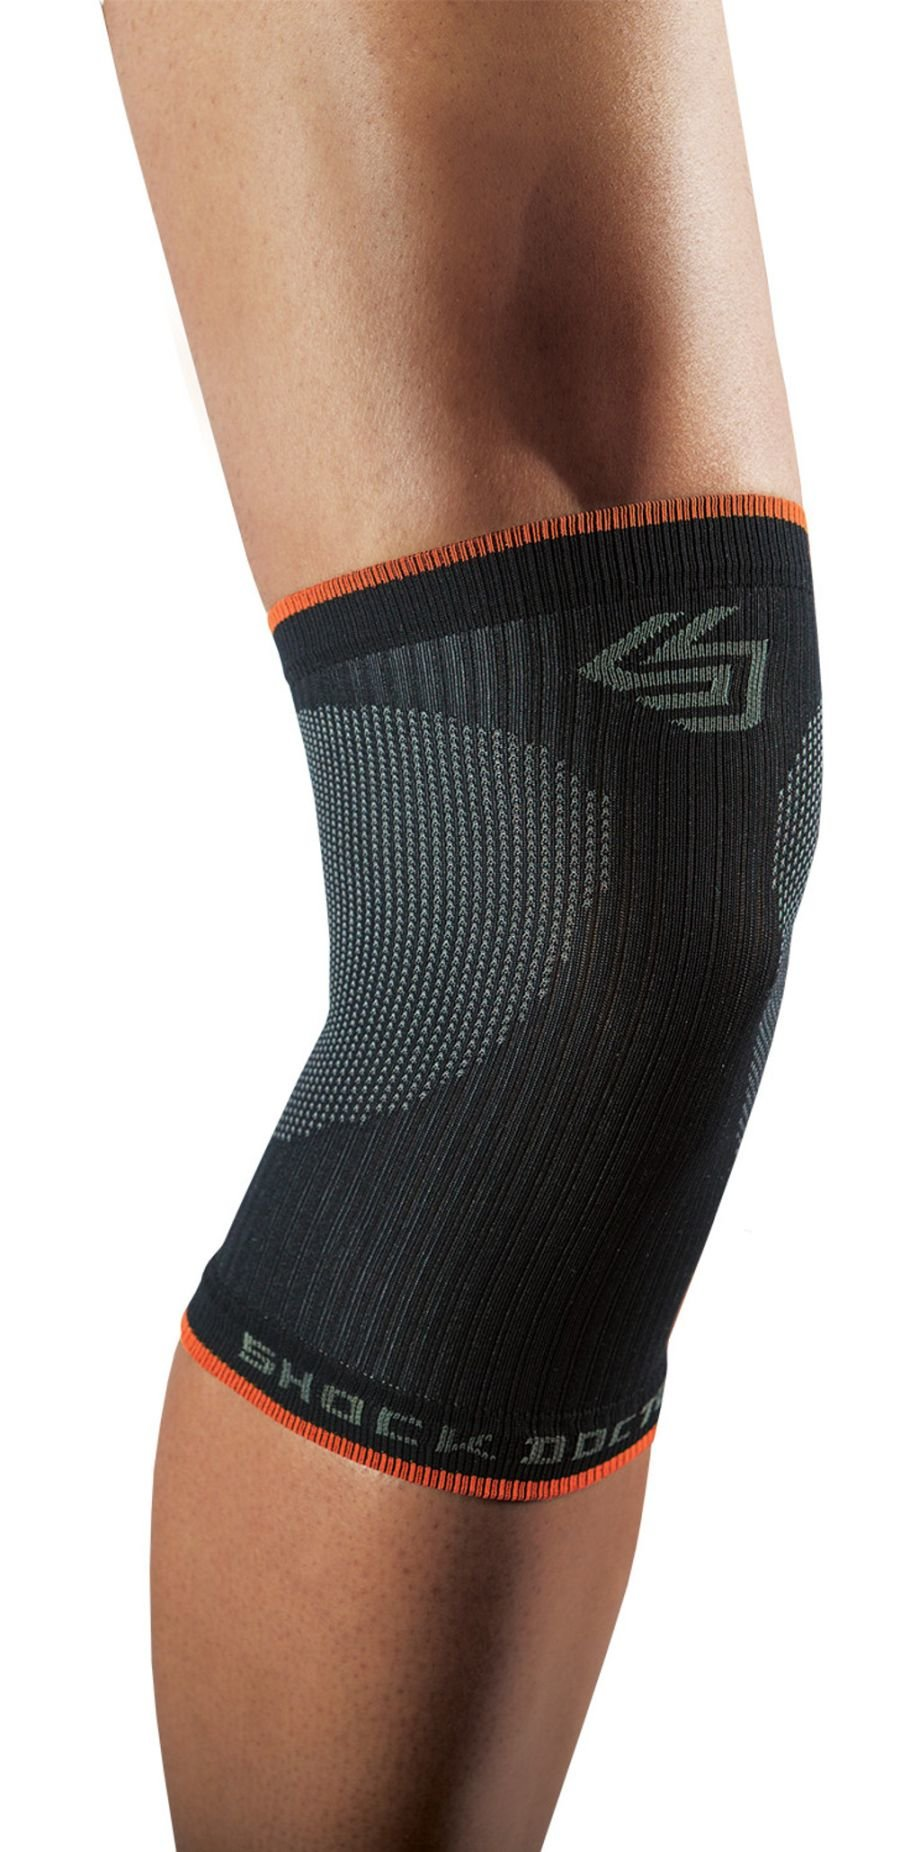 c0fa75651e Shock Doctor 732 SVR Compression Knee Sleeve -- Free Shipping -- Ithaca  Sports